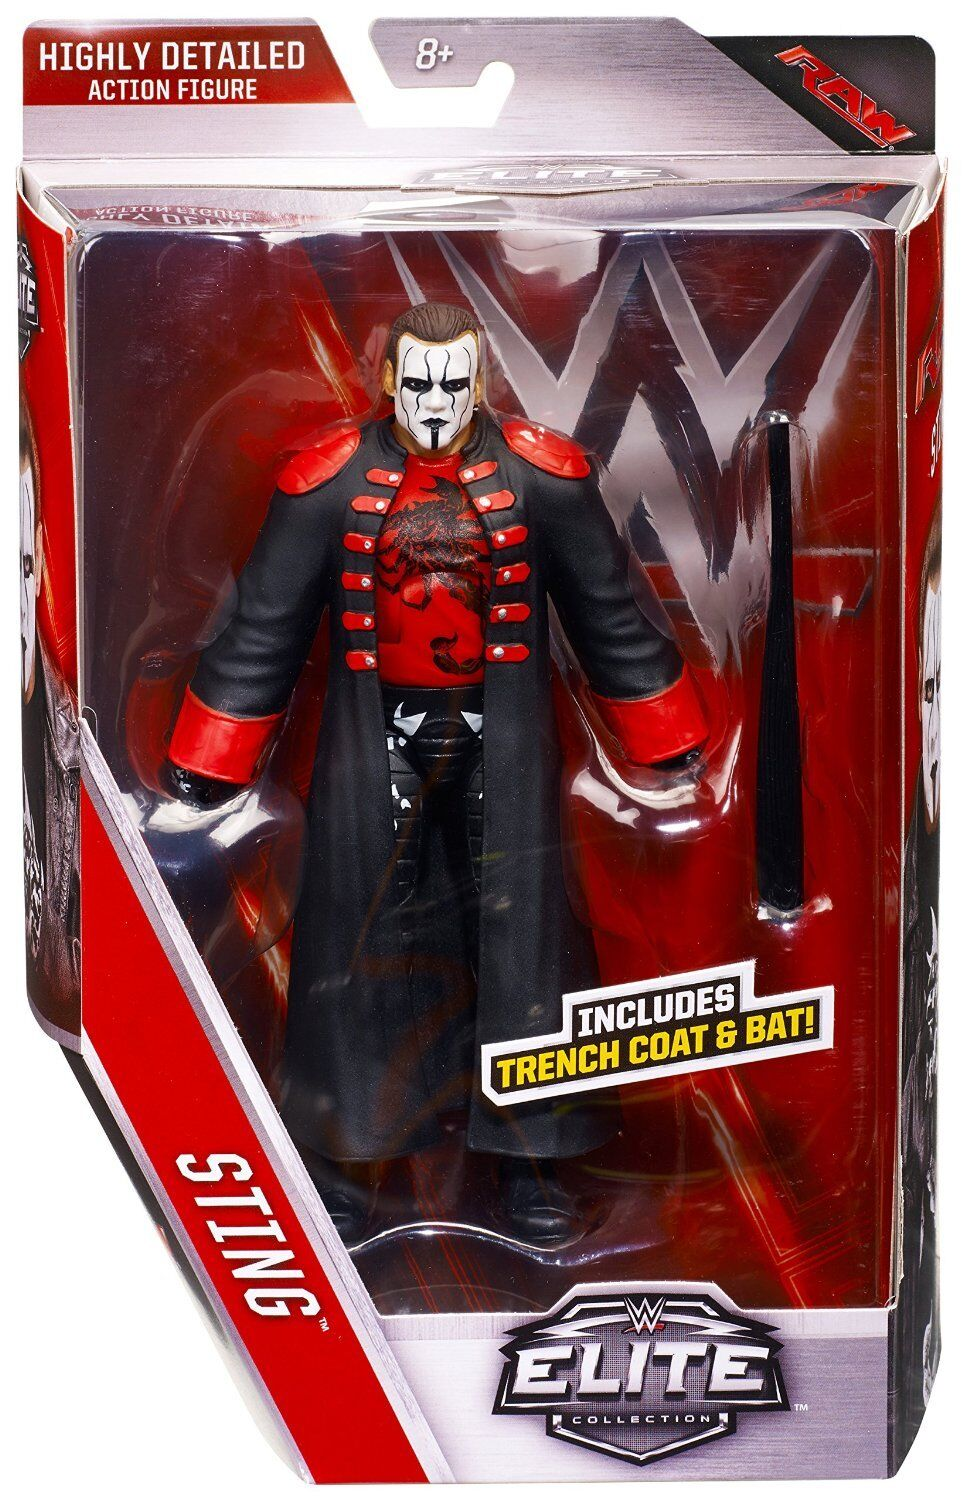 WWE WWE WWE STING ELITE 39 WRESTLING FIGURE WCW FIRST ELITE c65297